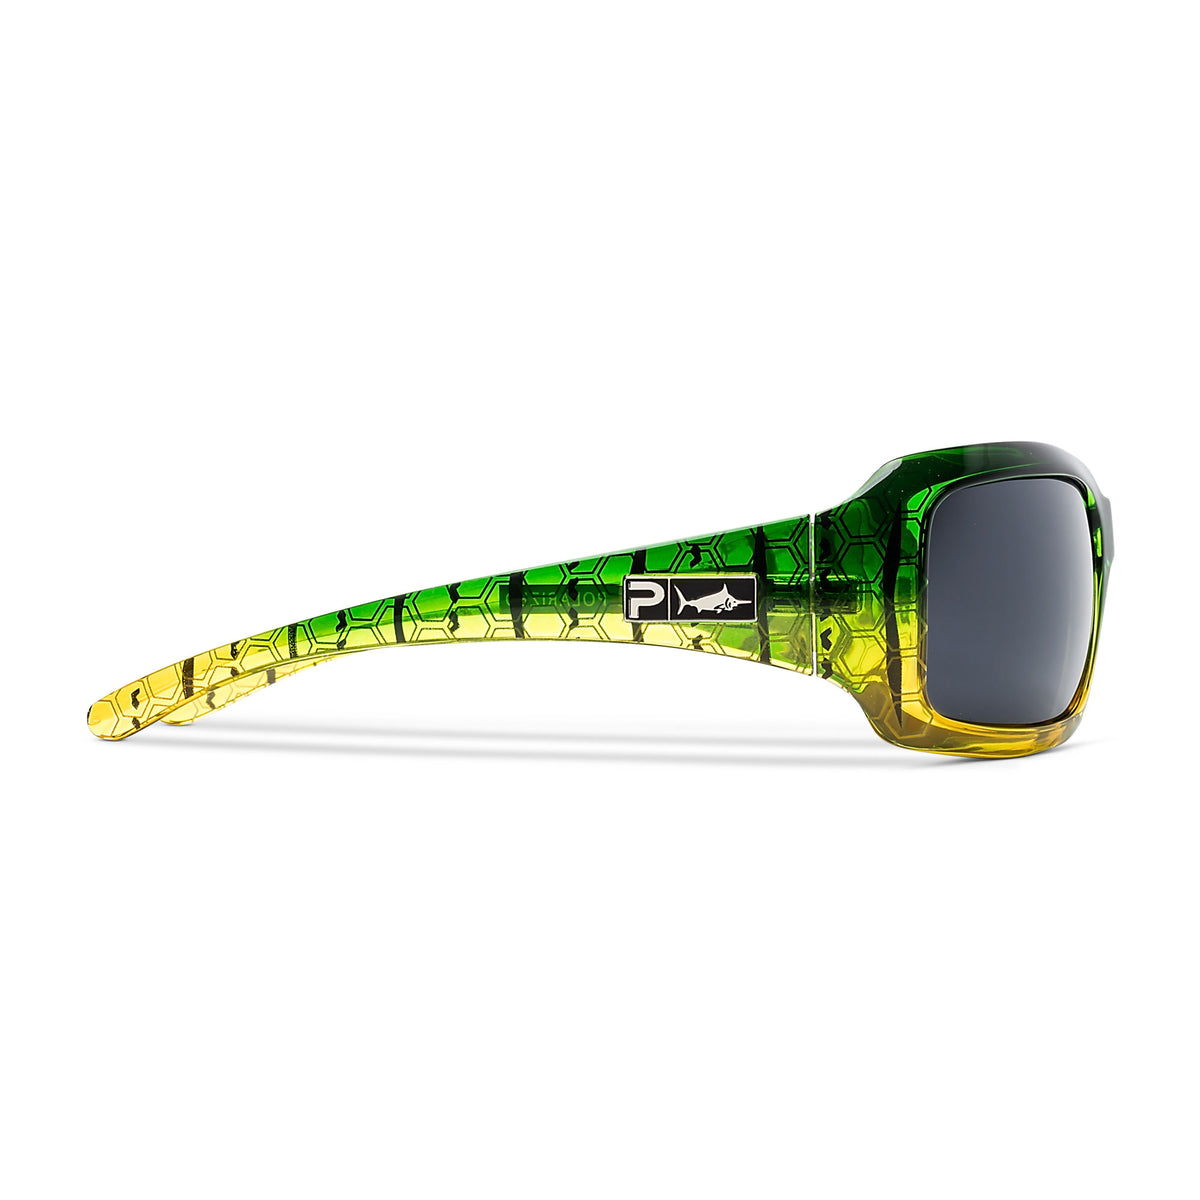 Bahia - Polarized Polycarbonate Lens Big Image - 3